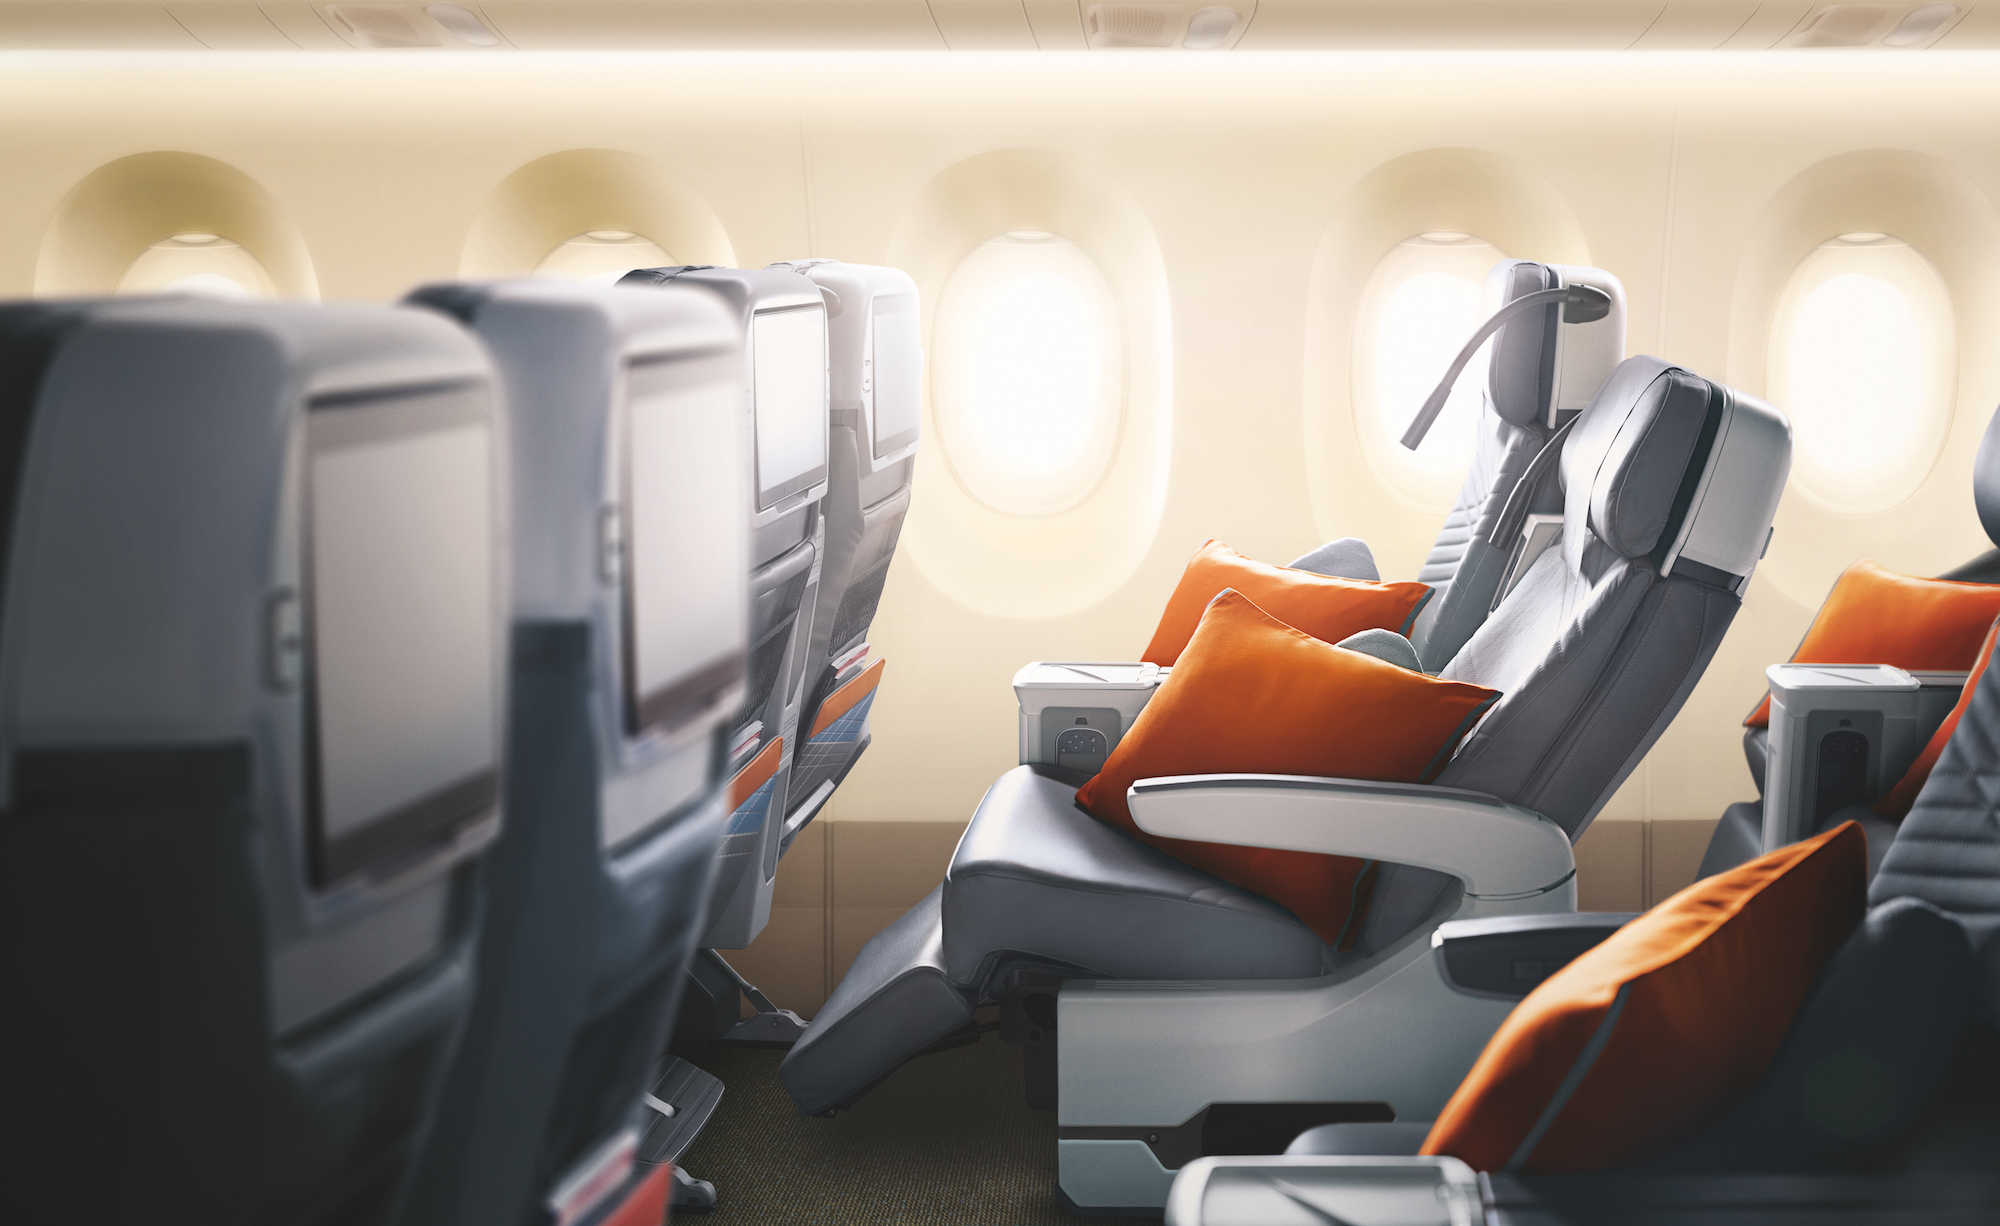 Singapore Airlines' Premium Economy on the A350-900ULR